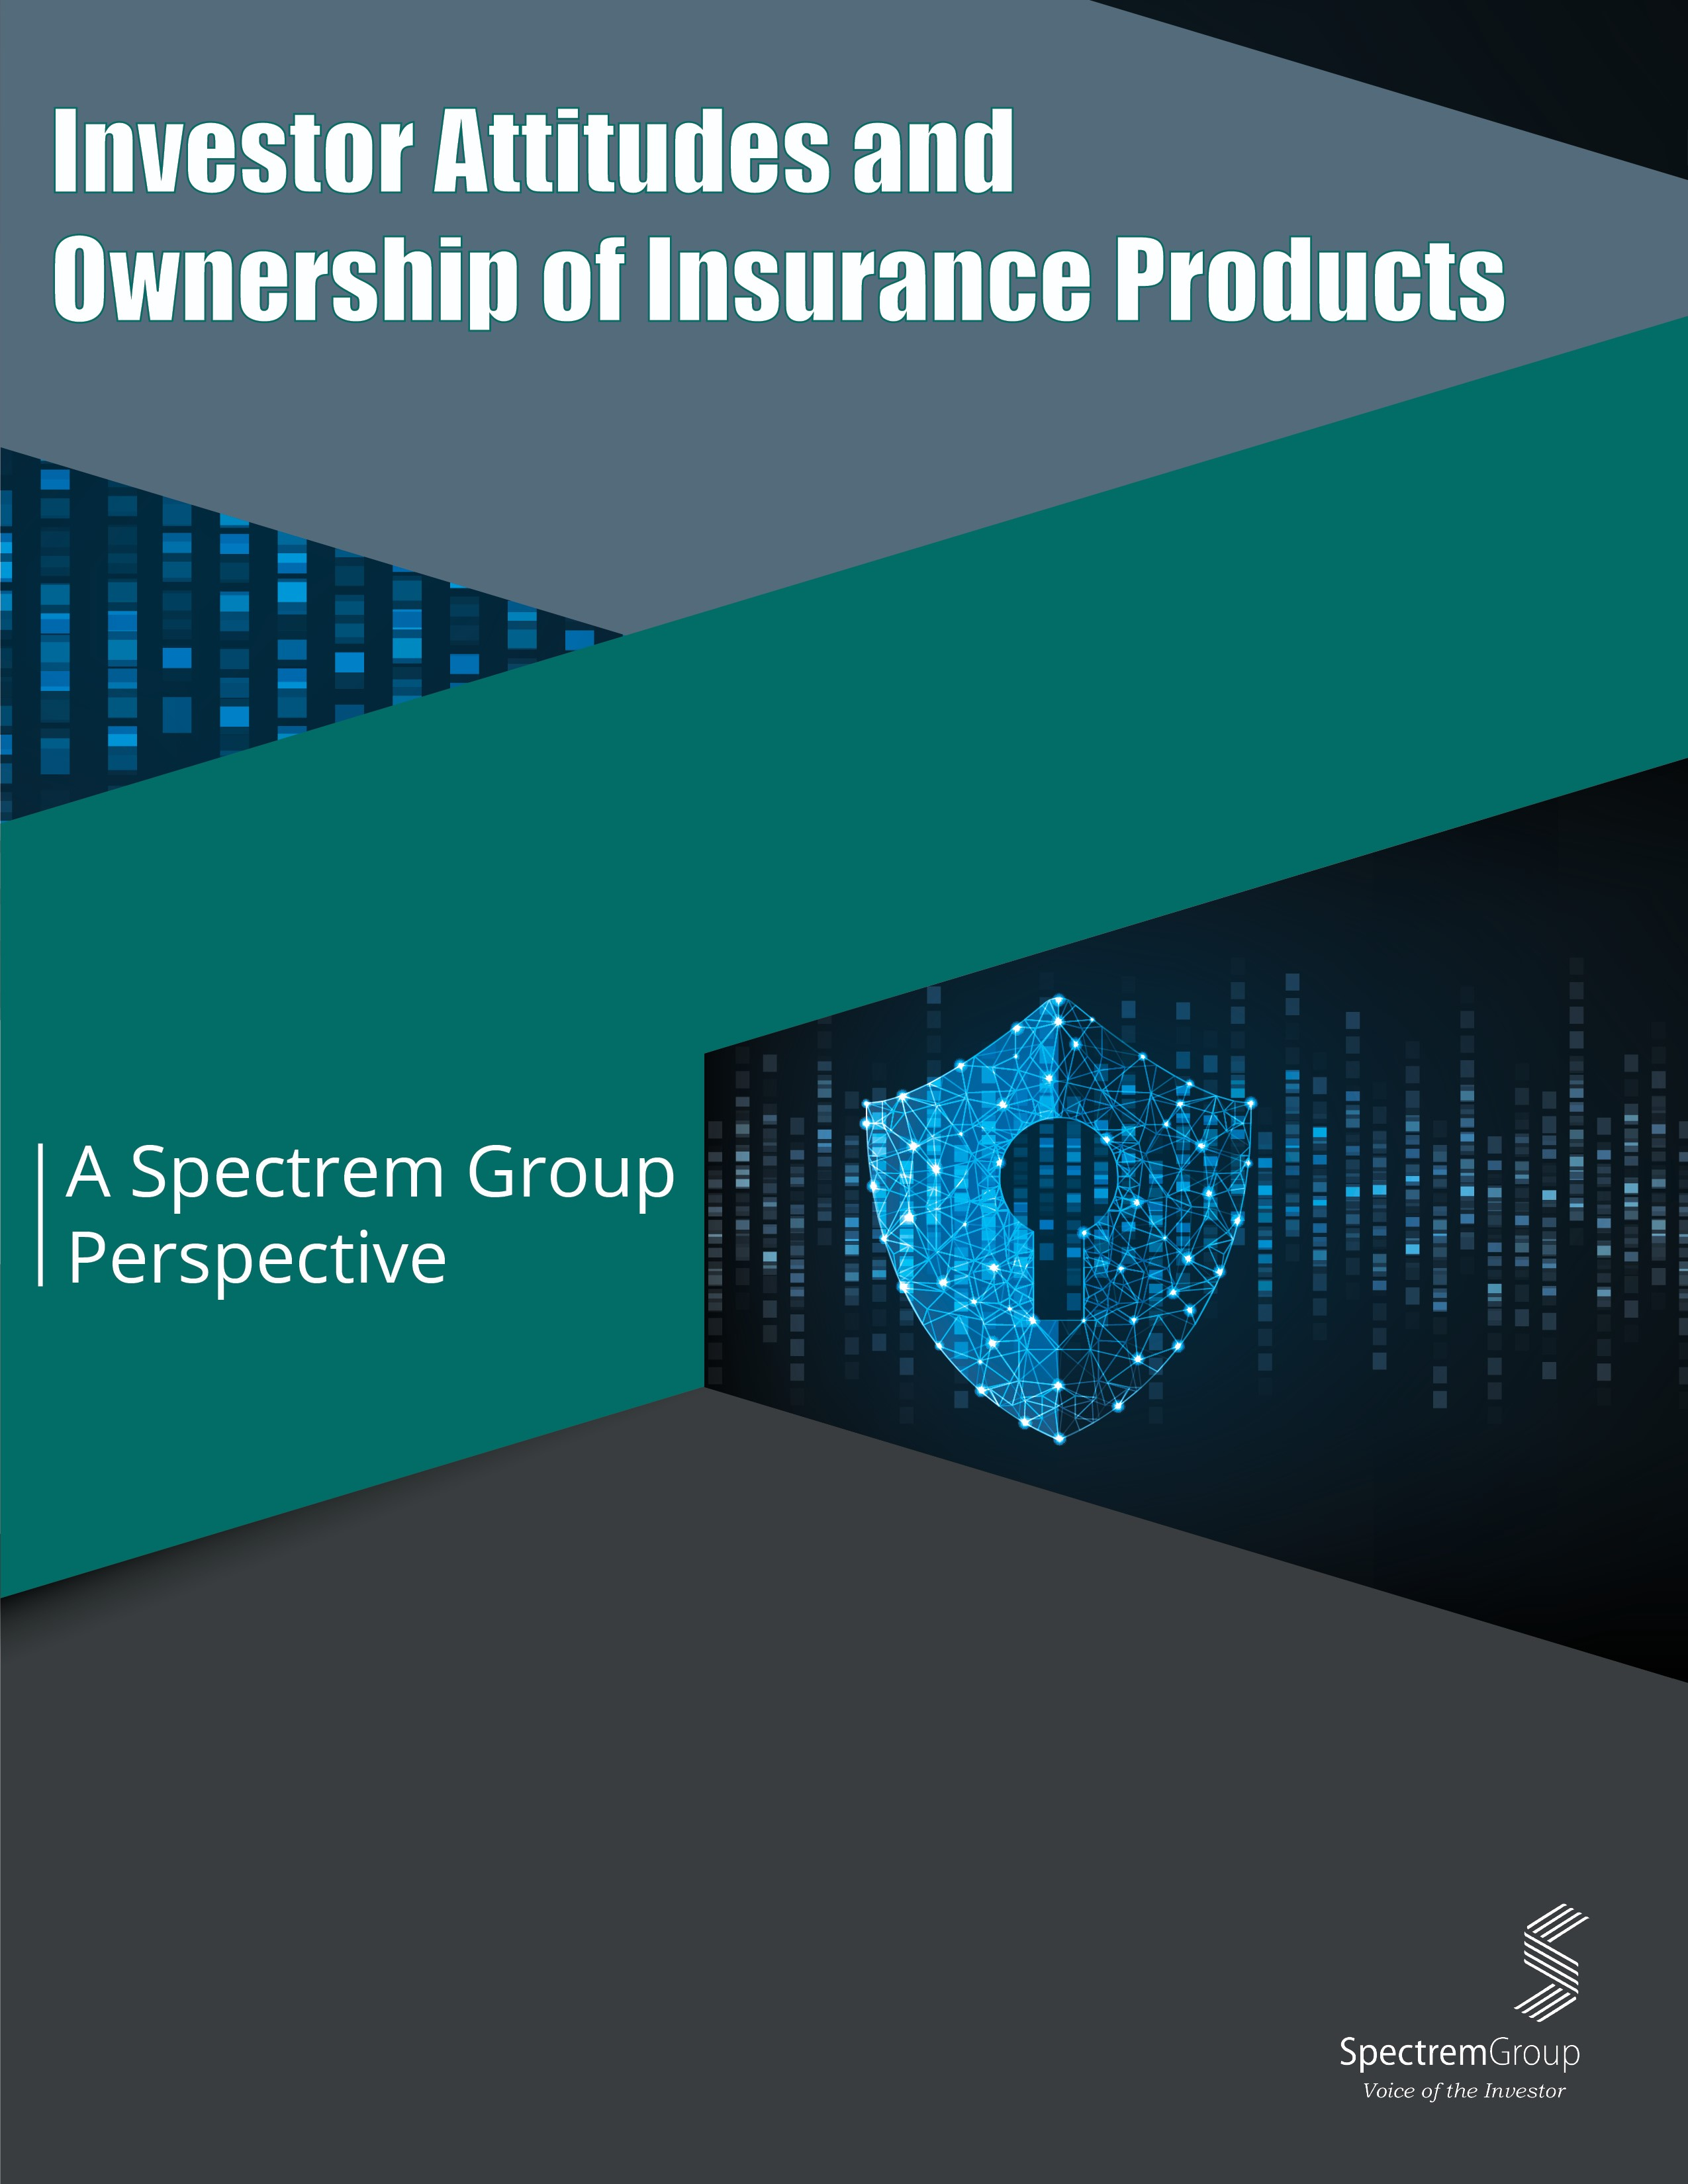 Investor Attitudes and Ownership of Insurance Products